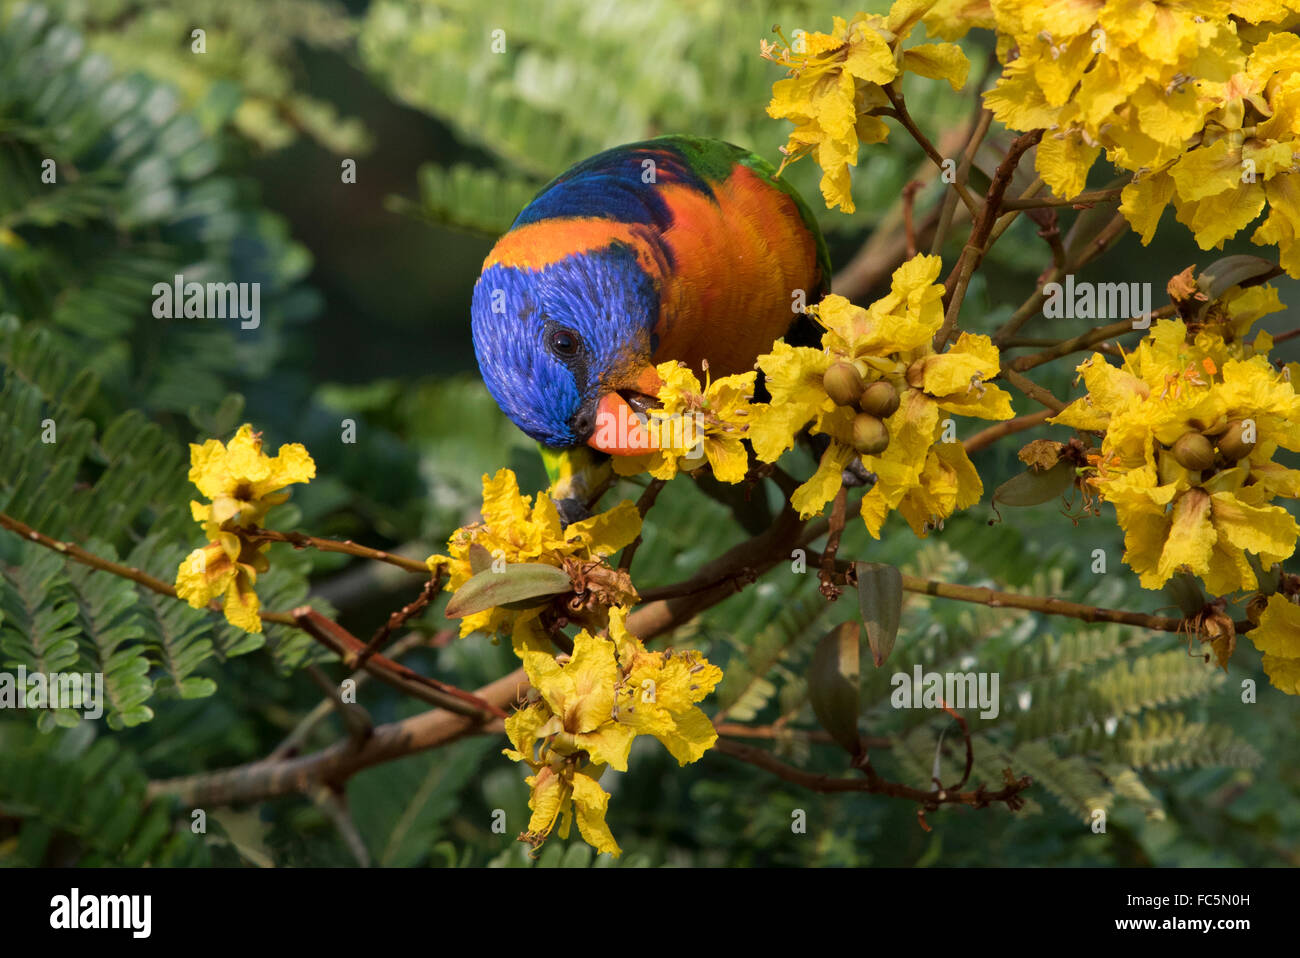 Red-collared Lorikeet (Trichoglossus rubritorquis) feeding on nectar in a flowering tree - Stock Image